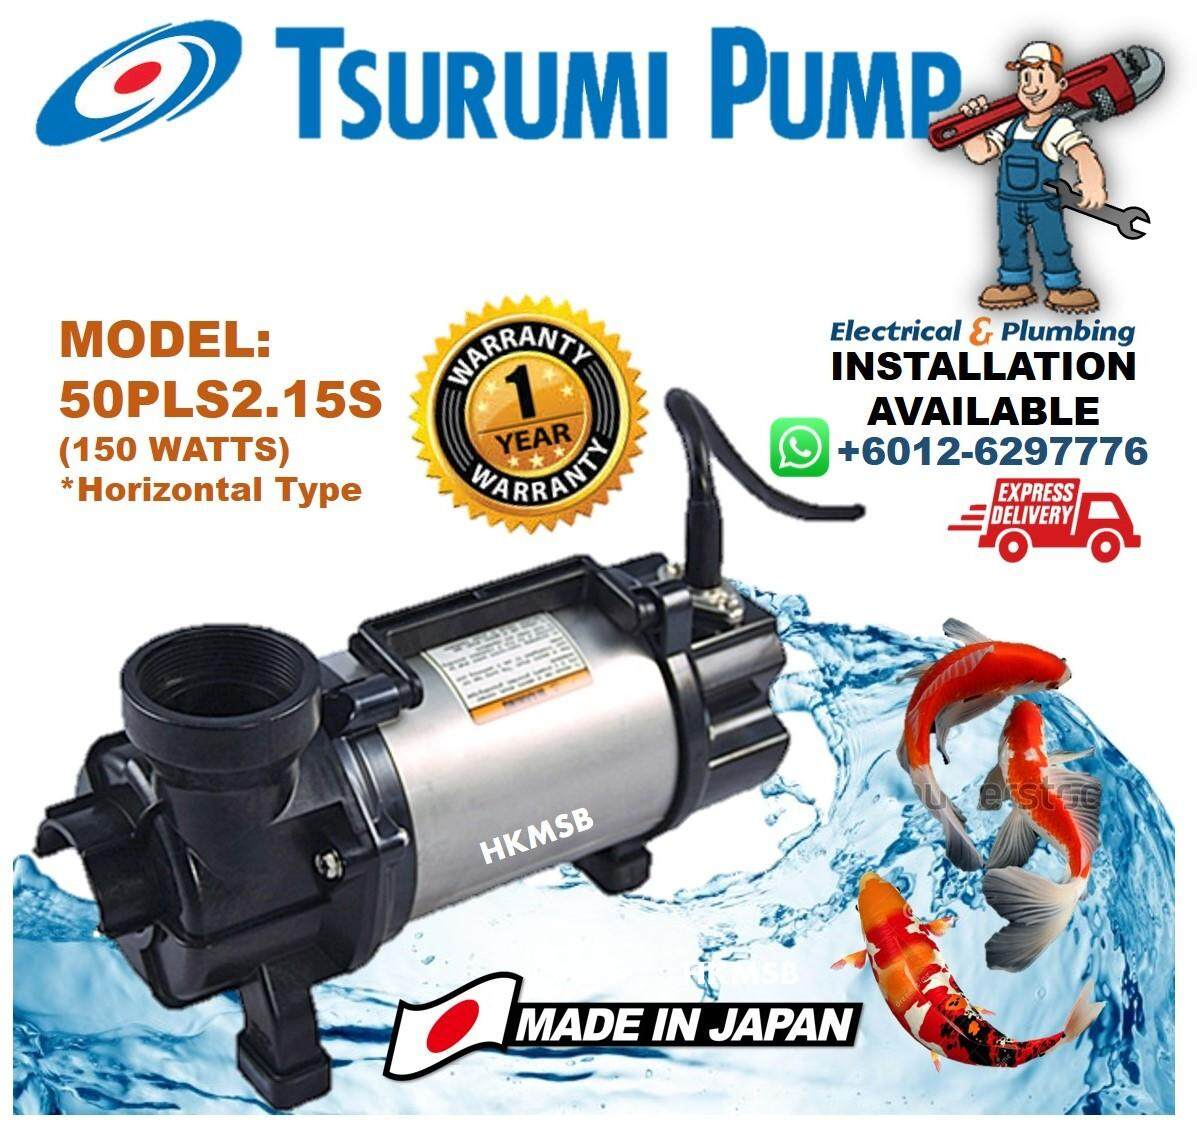 Made In Japan TSURUMI Submersible landscaping fountain Koi Fish Pond Water Pump 50PLS2.15S (150W), Horizontal low water lever type**Installation Available